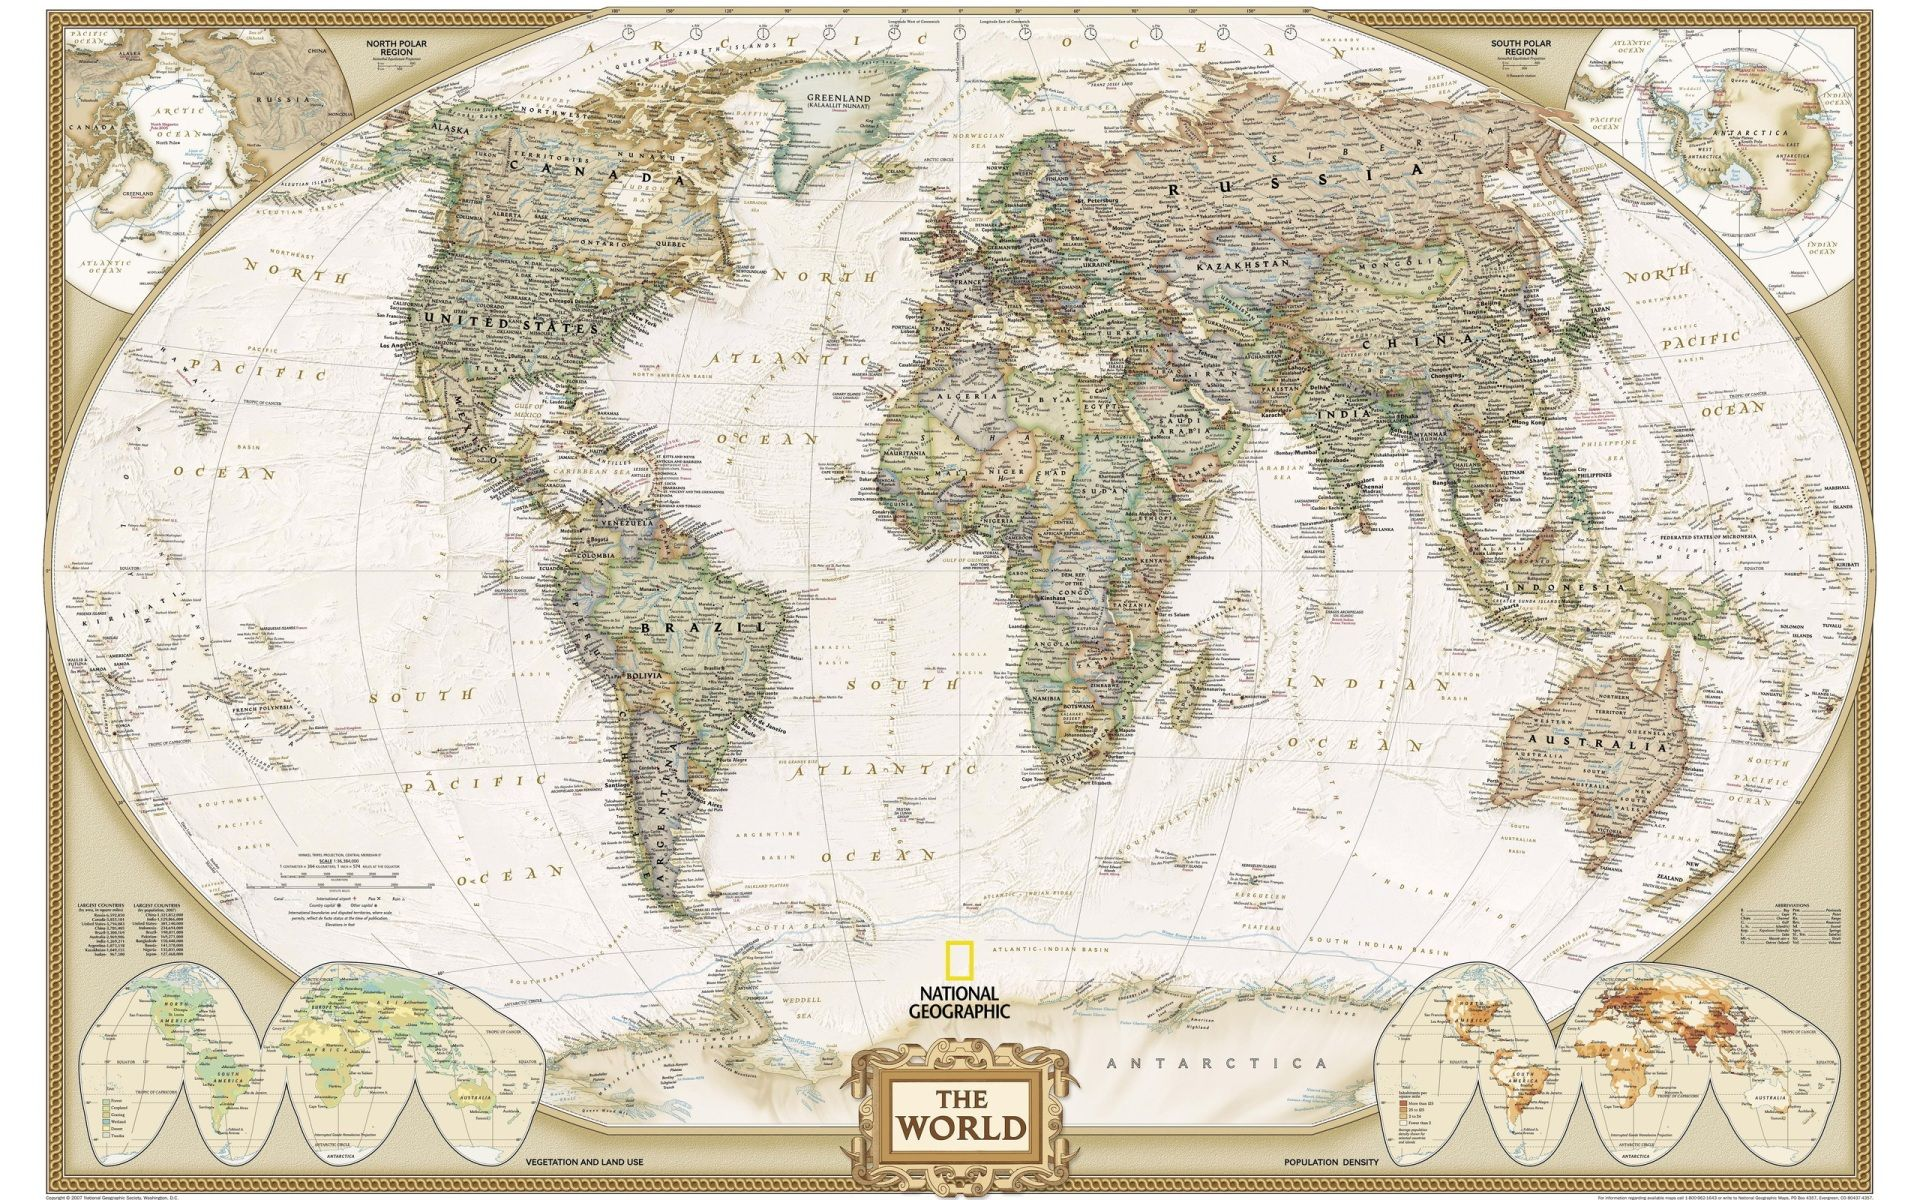 World map world map pinterest wallpaper world executive map antique tones two sizes and spanish available map type enlarged tubed x national geographic maps gumiabroncs Choice Image